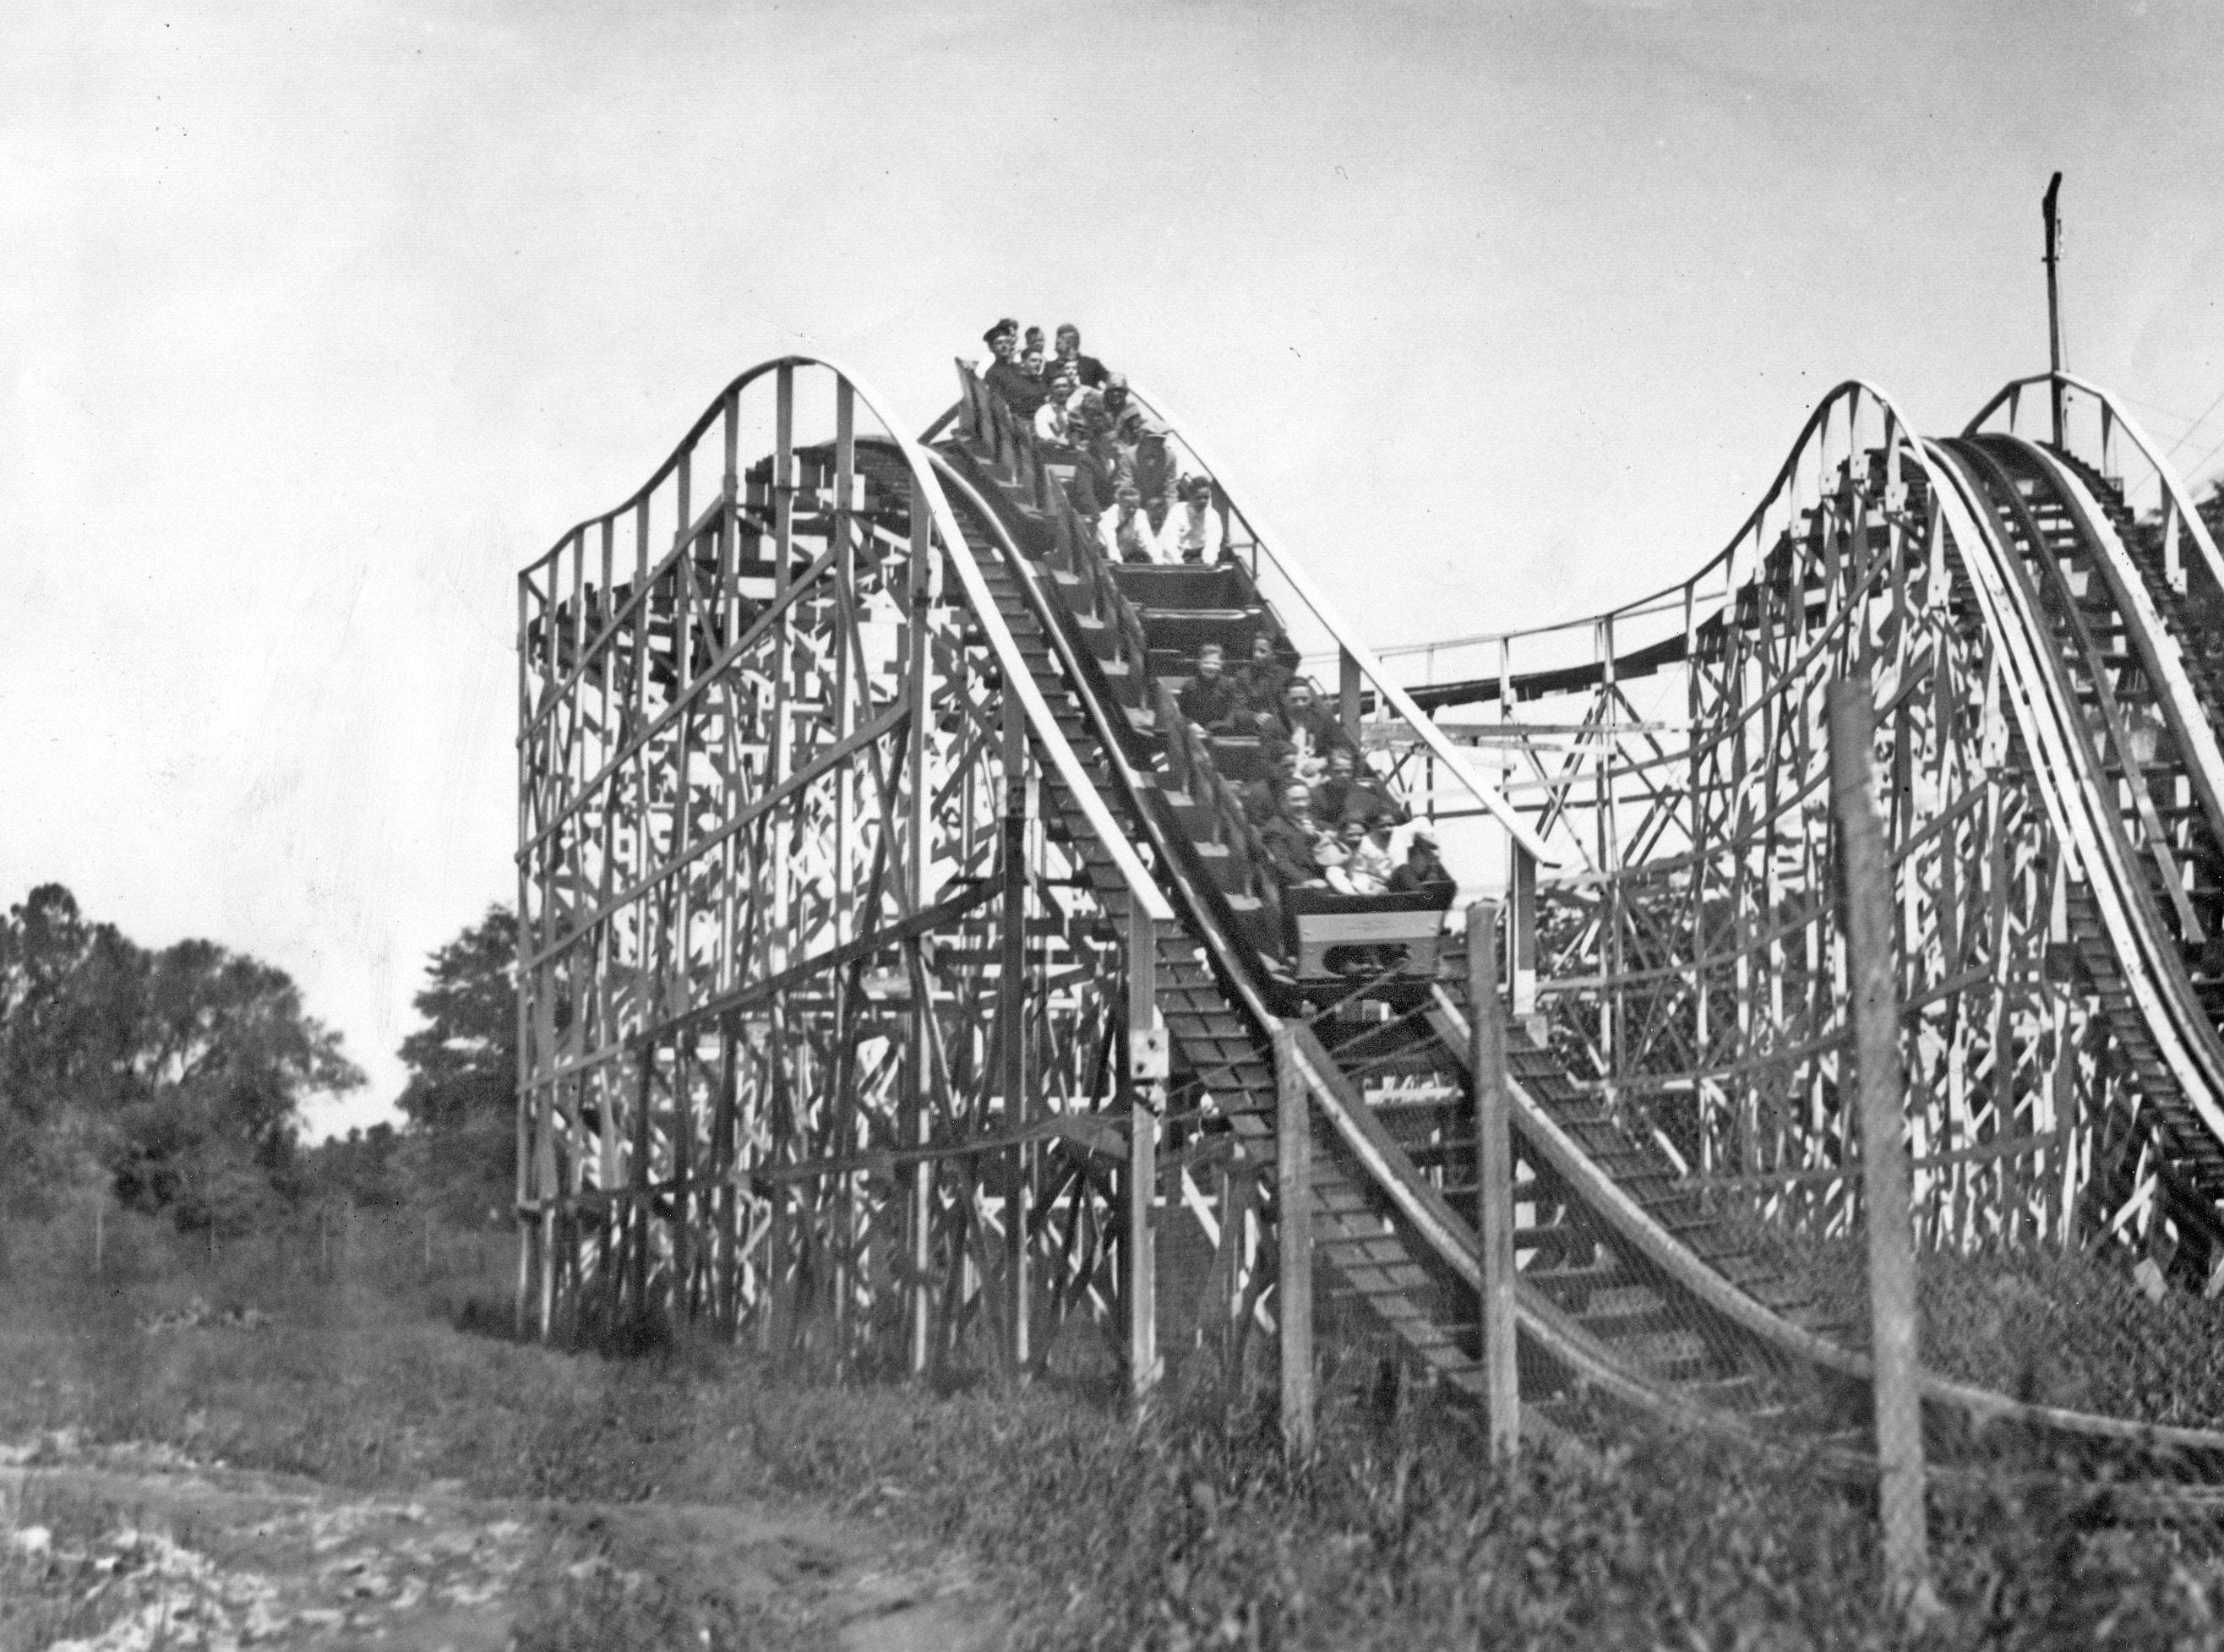 The roller coaster ride at Riverside Amusement Park in 1927.